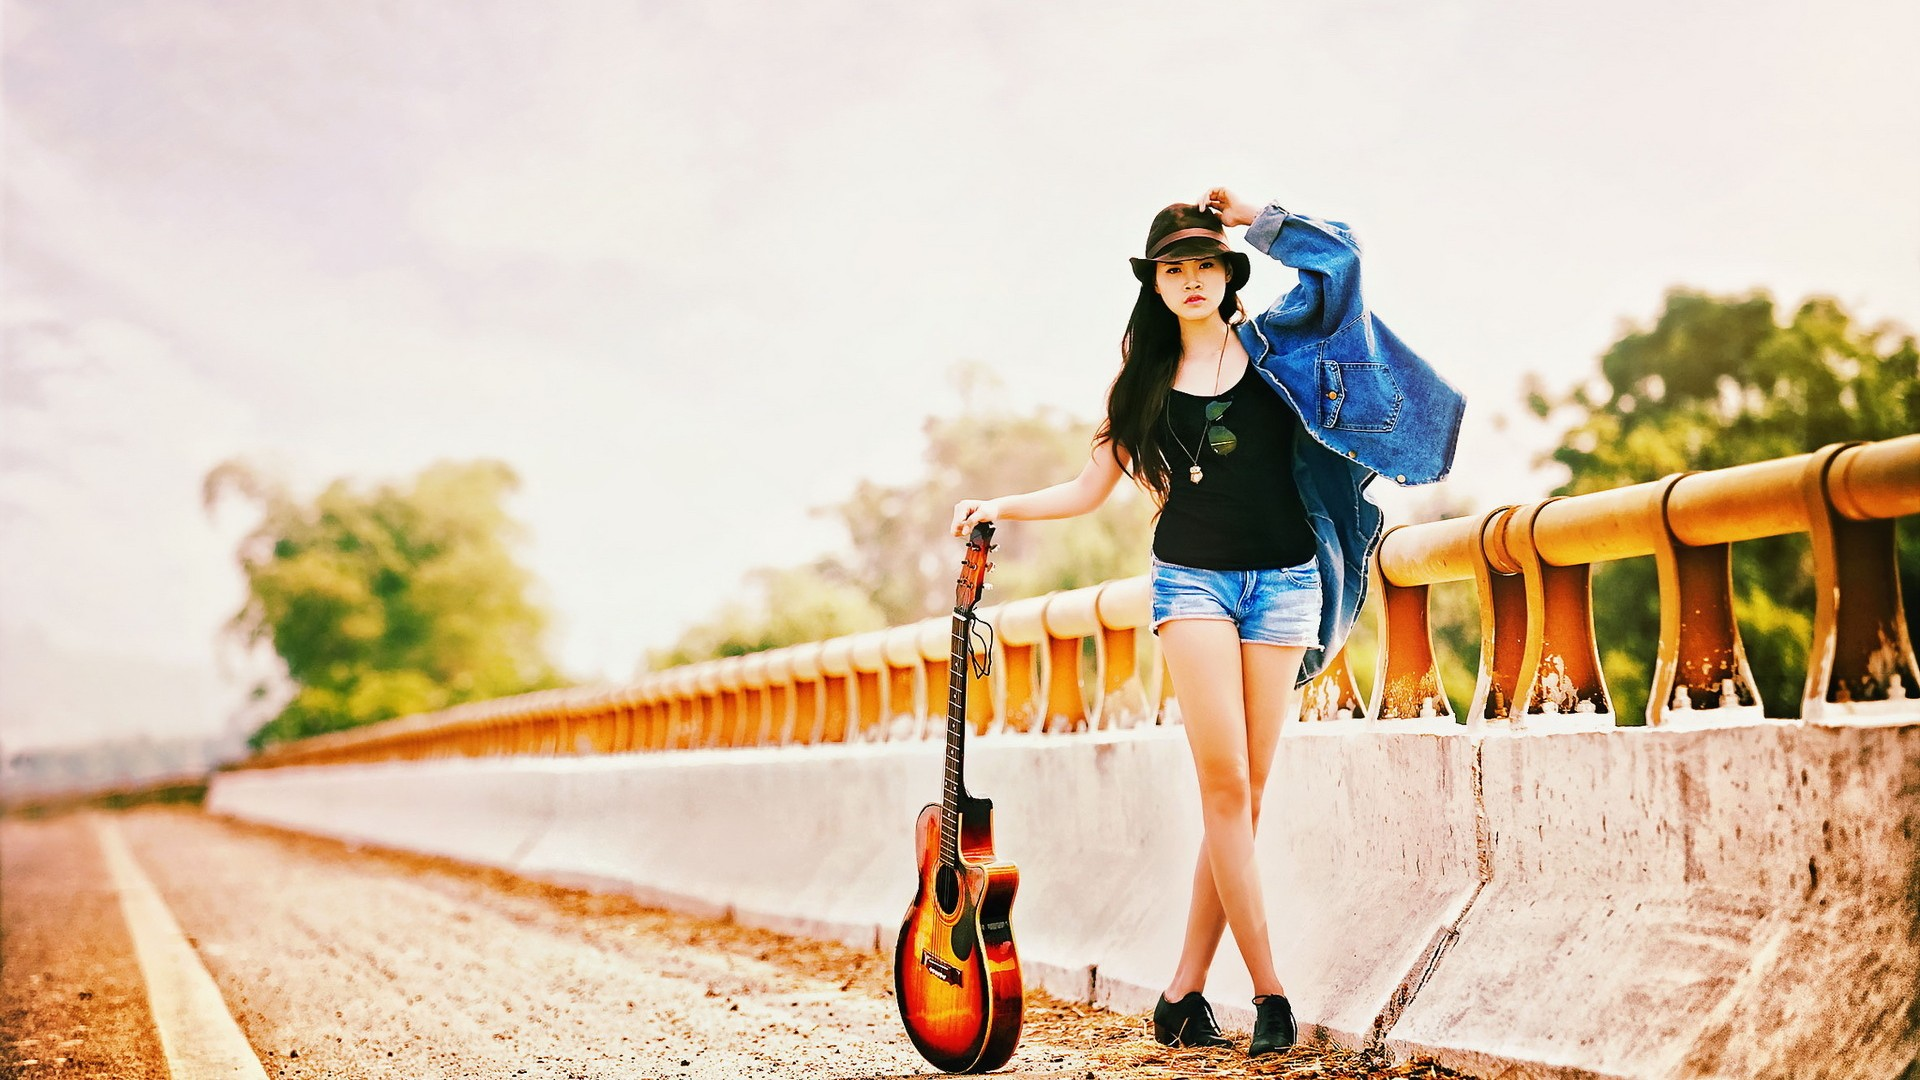 Guitar Girl   Wallpaper High Definition High Quality Widescreen 1920x1080